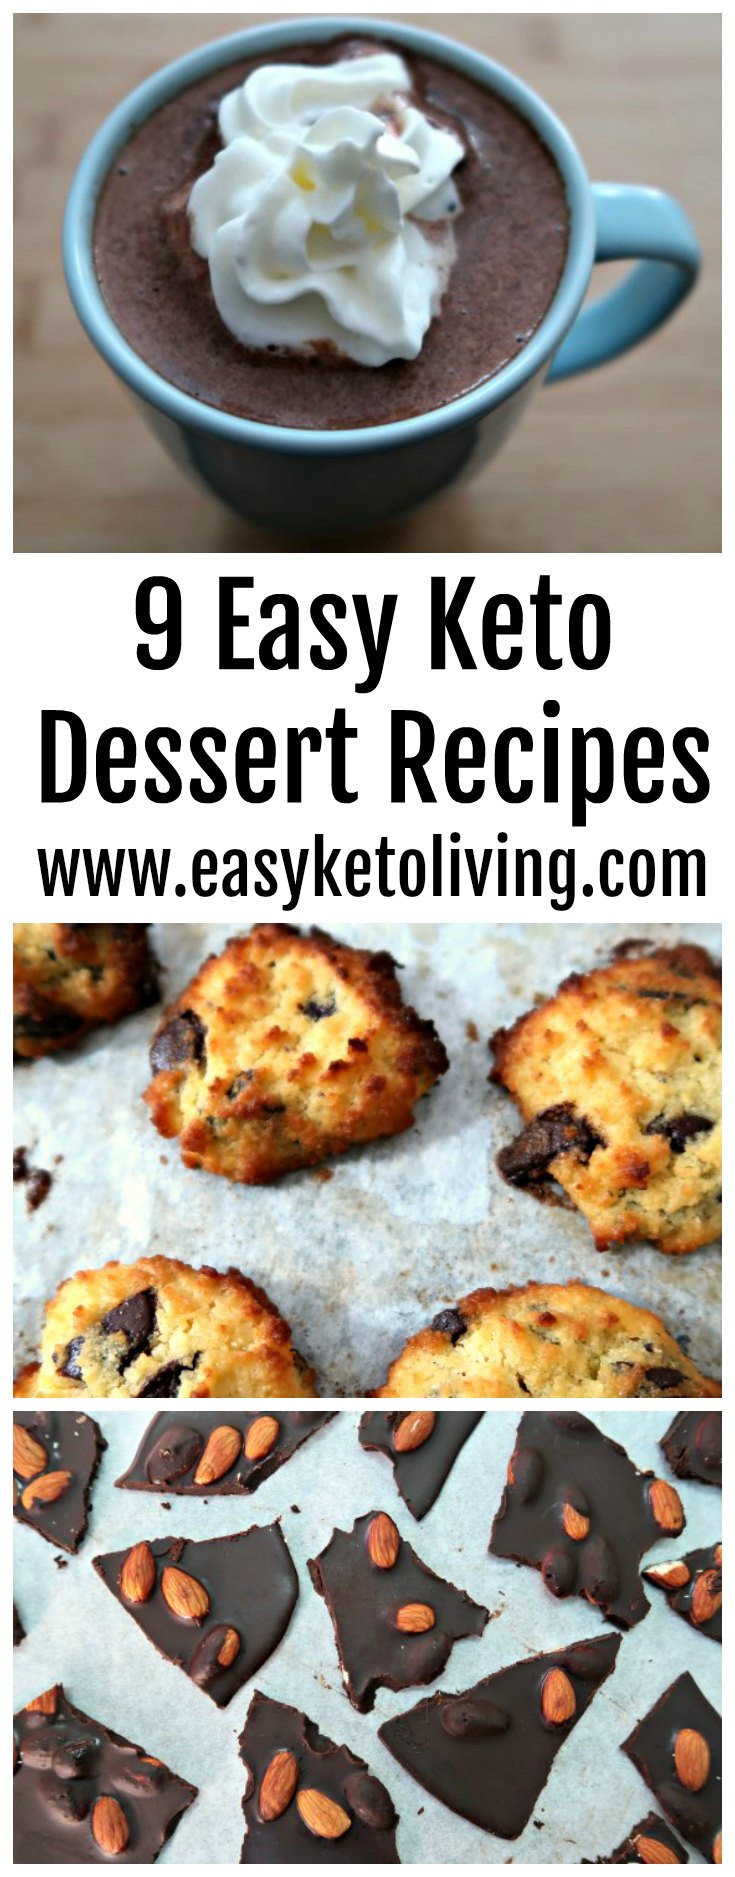 Easy Keto Dessert Recipes  9 Easy Keto Dessert Recipes Quick Low Carb Ketogenic